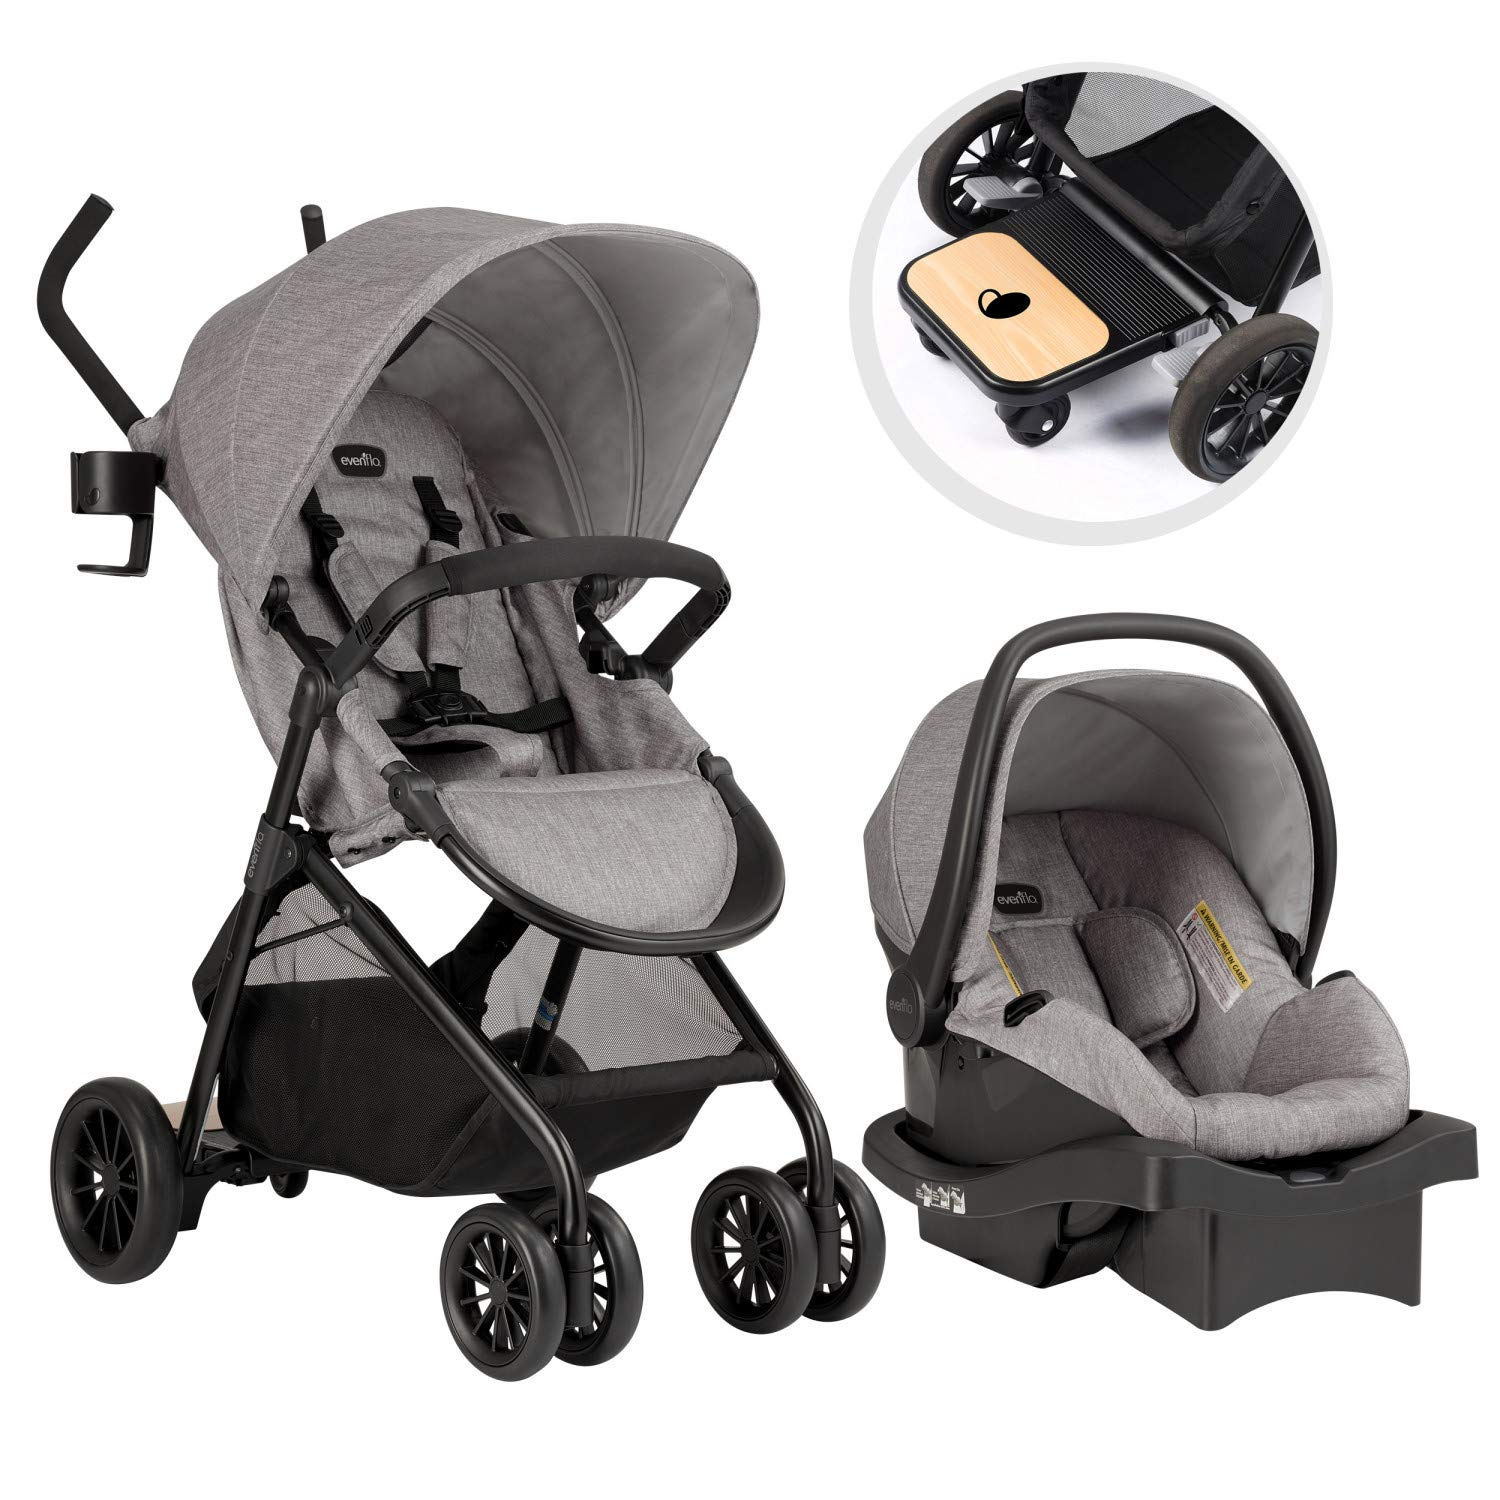 Evenflo Sibby Travel System with LiteMax 35 Infant Car Seat, Mineral Gray by Evenflo (Image #1)